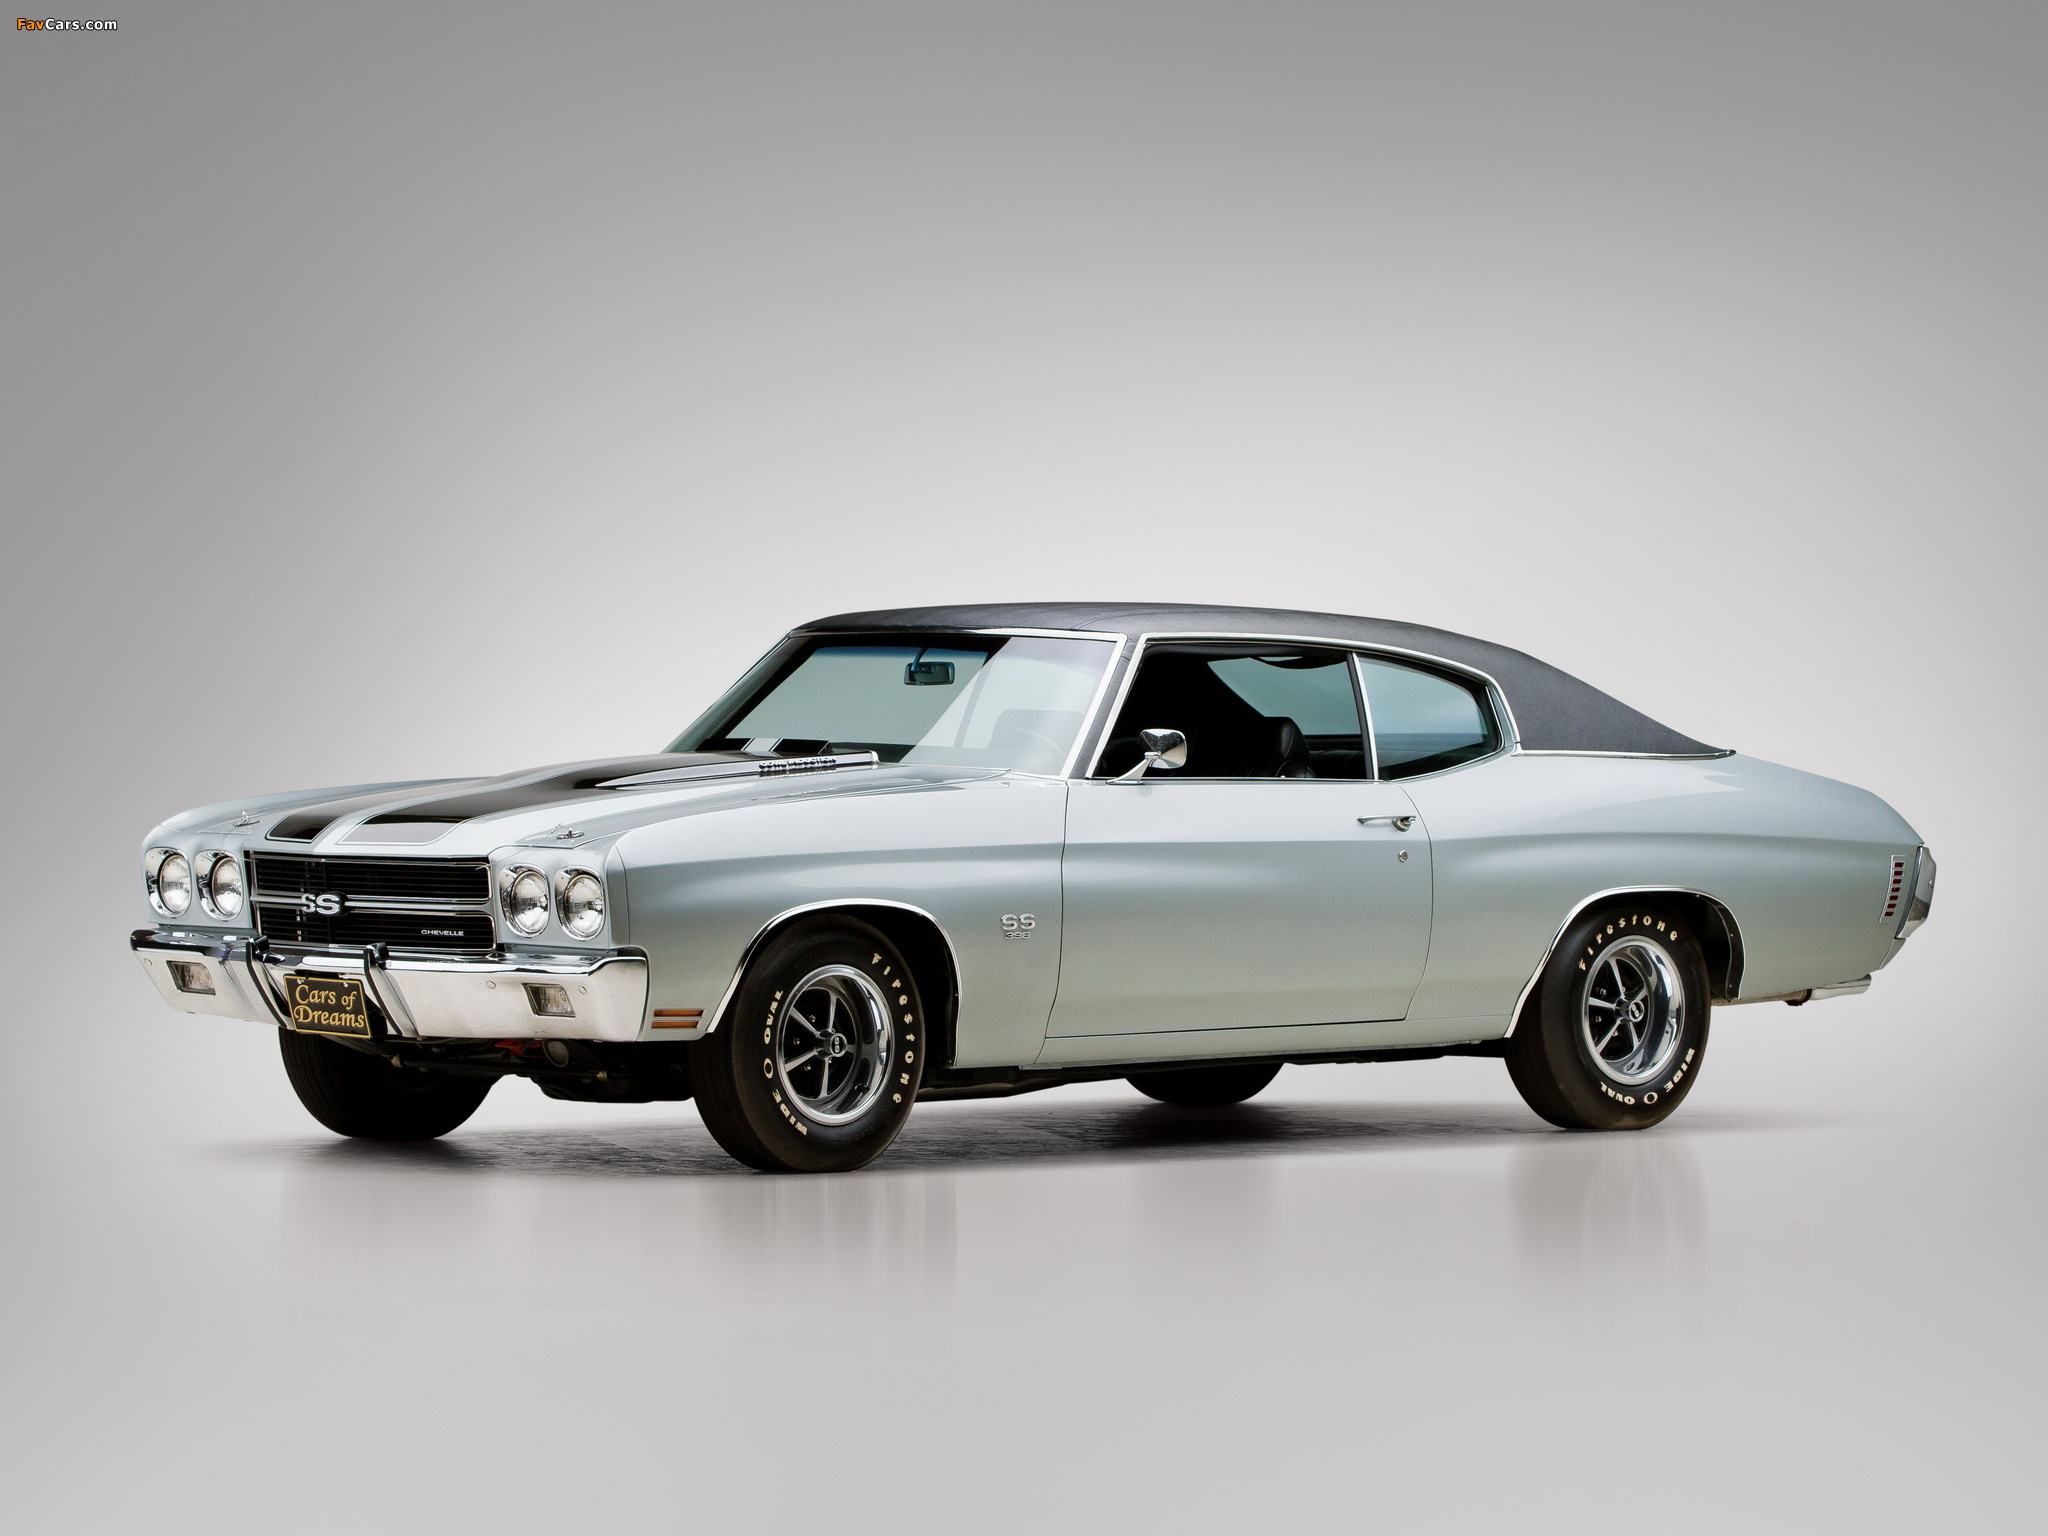 Wallpapers of Chevrolet Chevelle SS 396 Hardtop Coupe 1970 2048 x 2048x1536